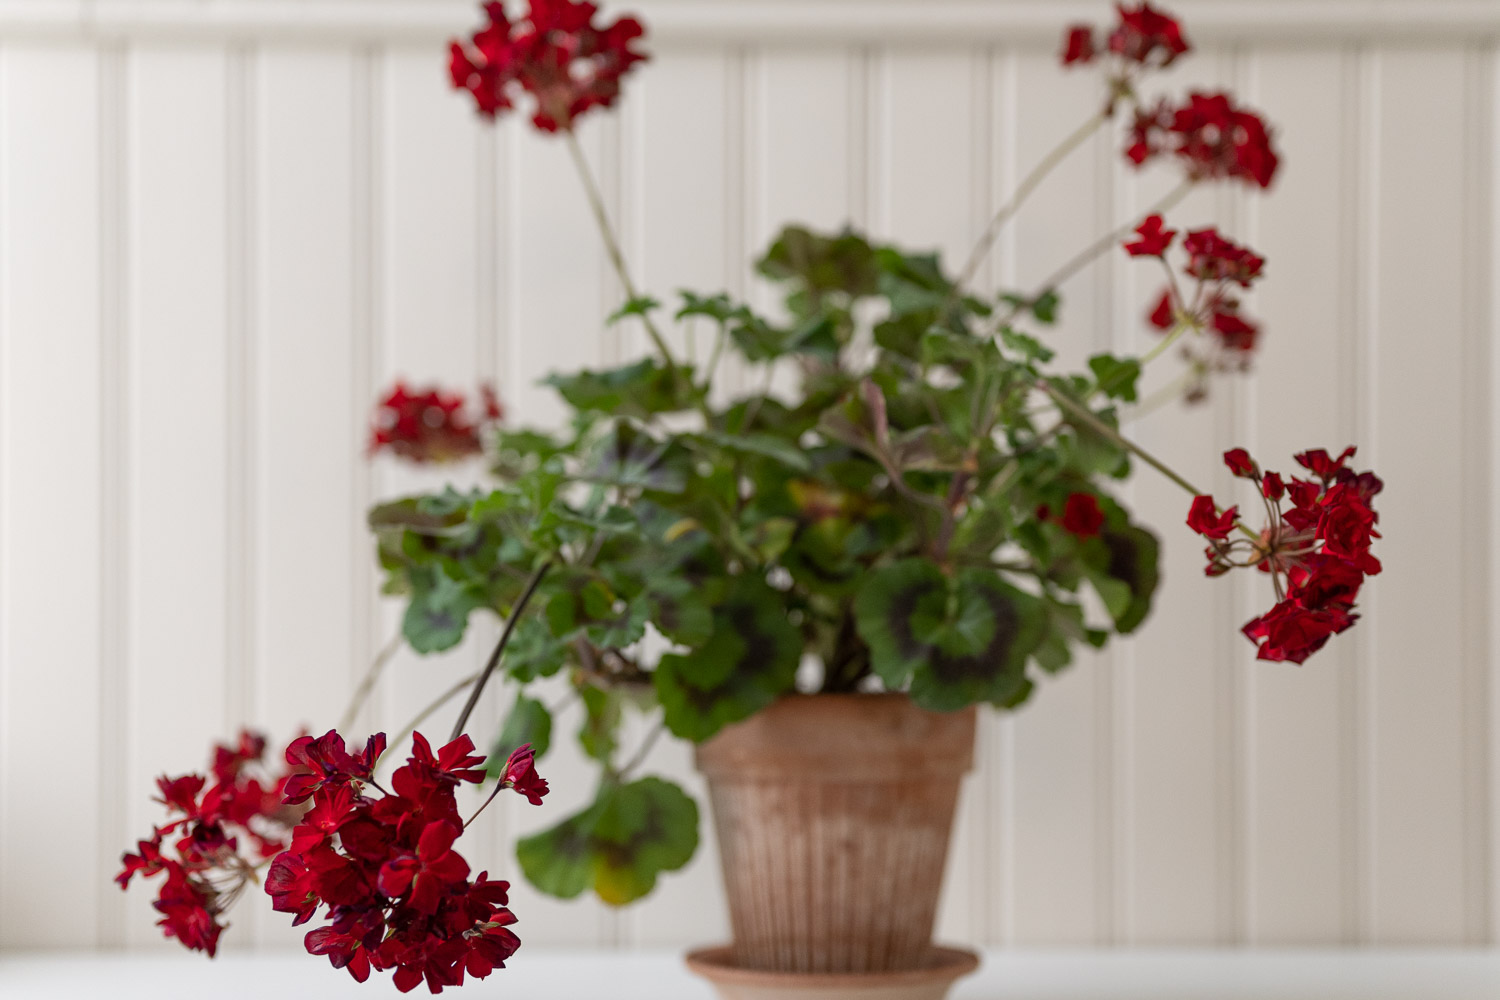 Moonlight Tumbao pelargoni